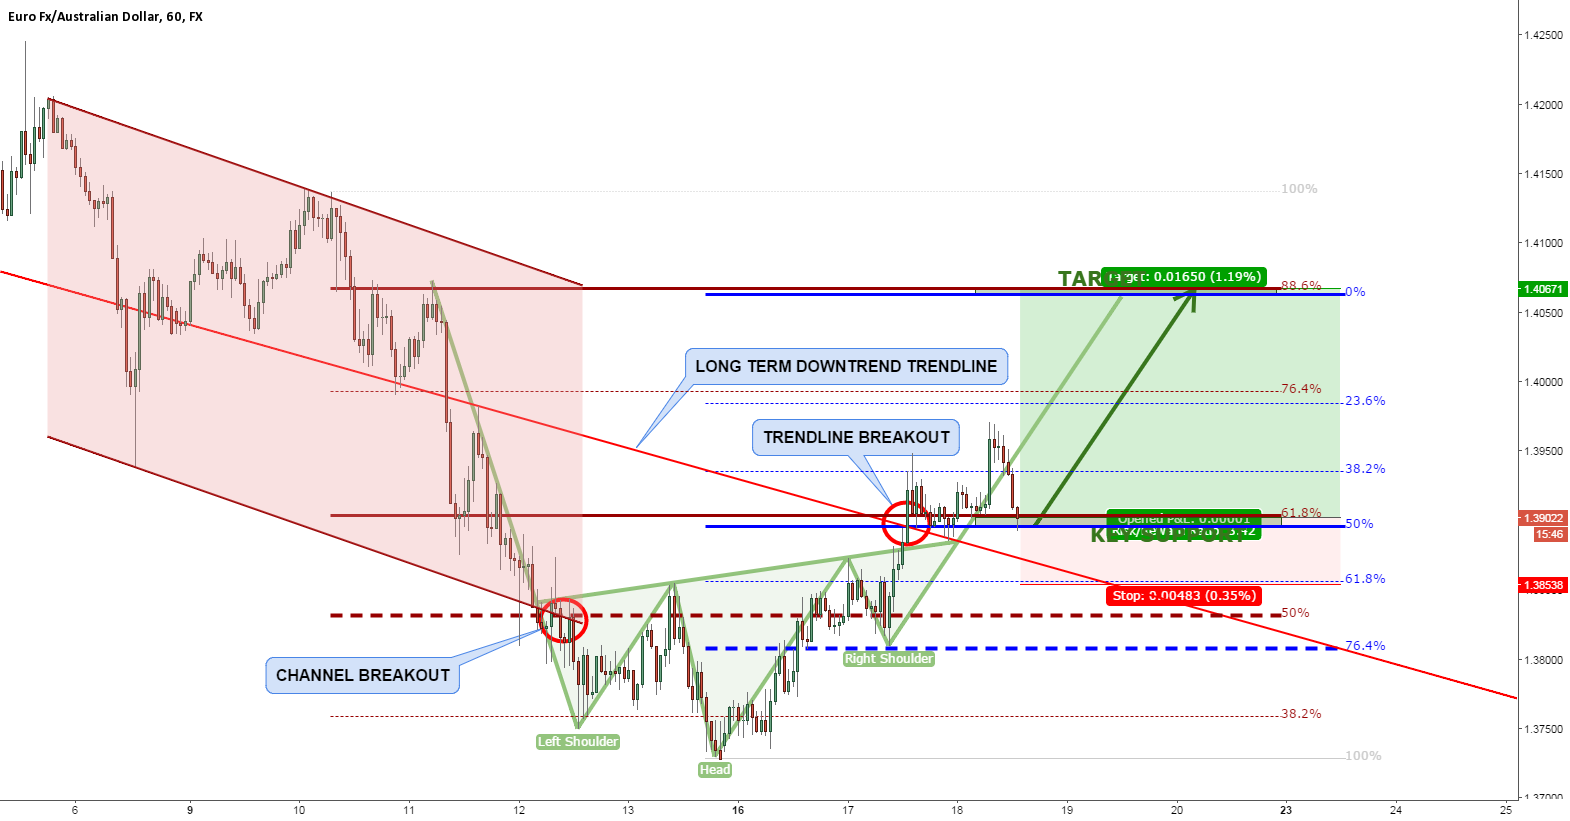 EURAUD INVERTED HEAD AND SHOULDERS